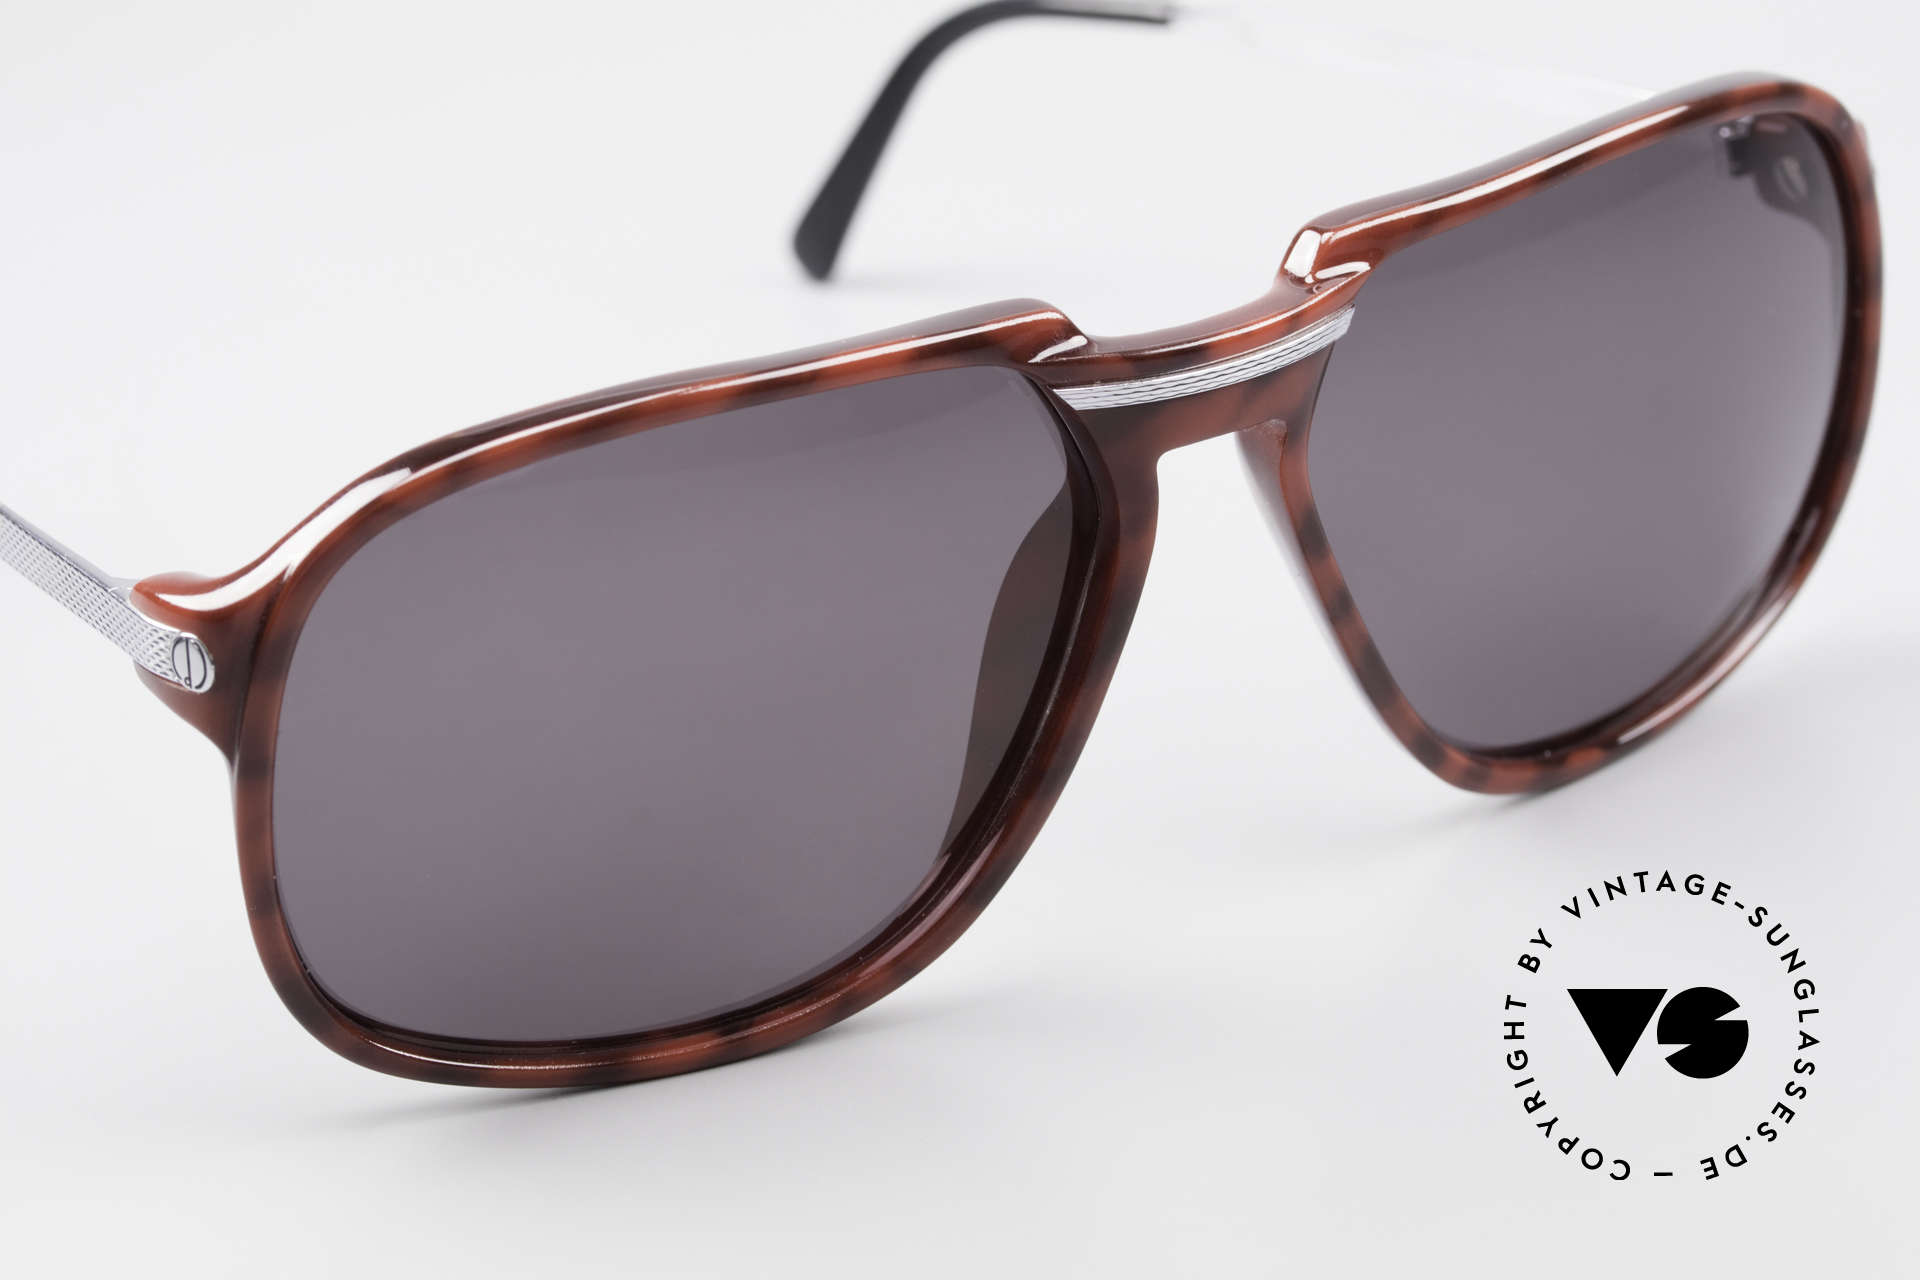 Dunhill 6005 Rare Old Men's Sunglasses 1984, new old stock (like all our vintage Dunhill shades), Made for Men